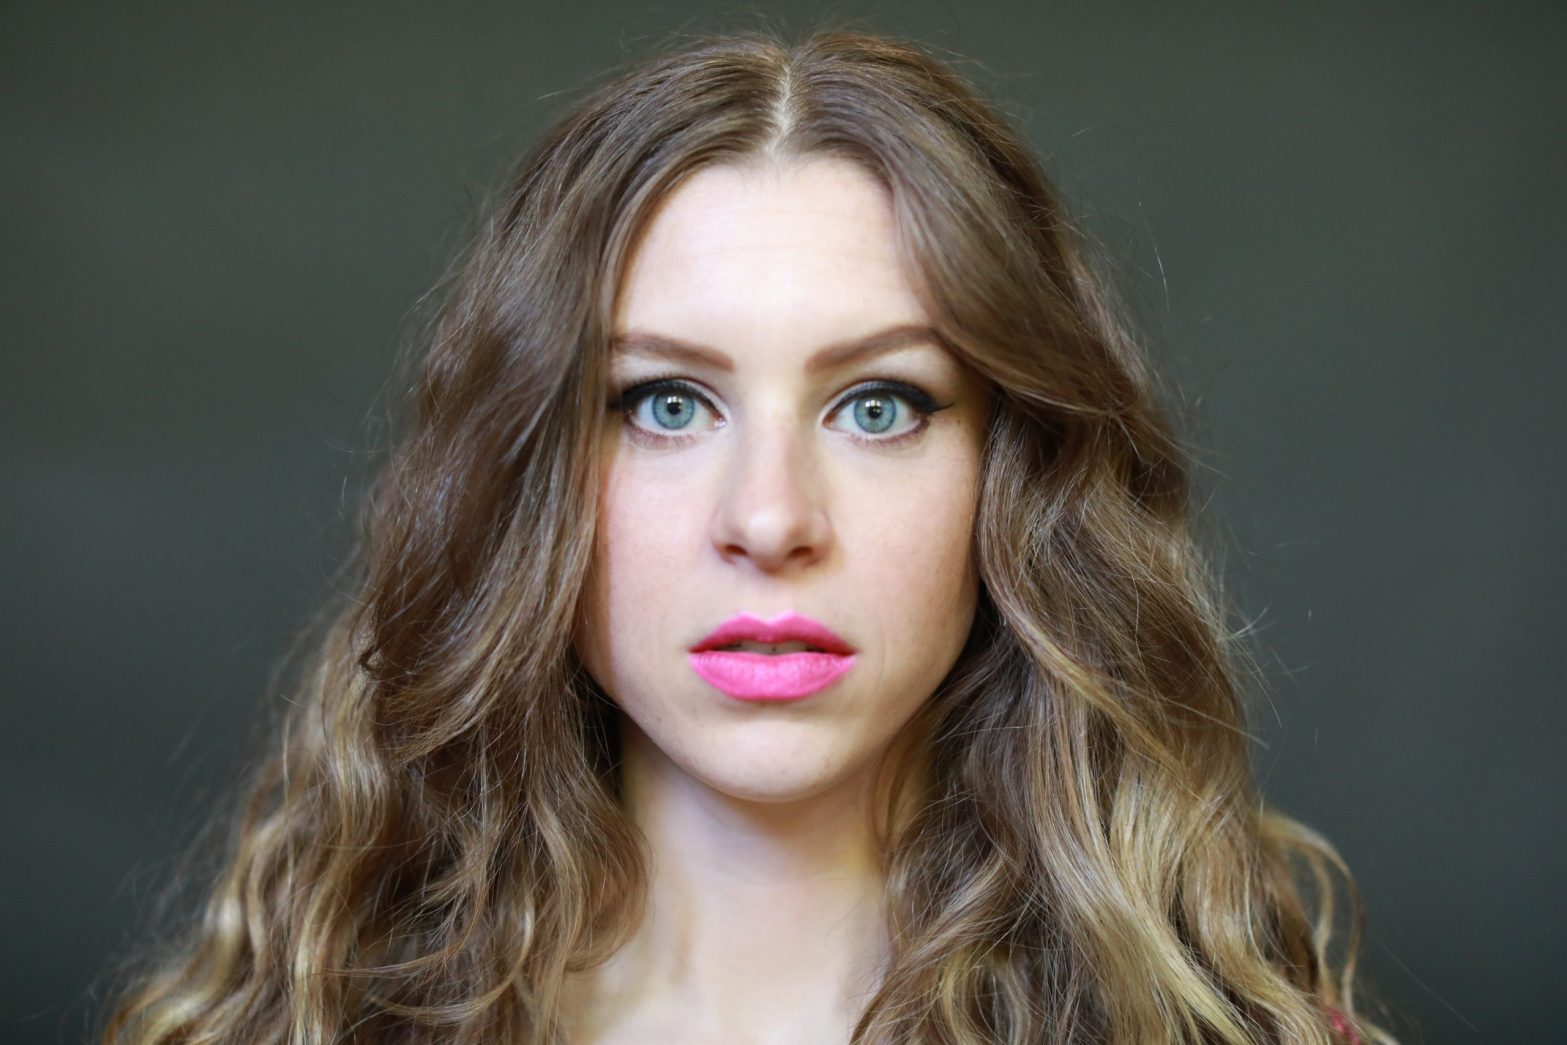 Headshot of a woman with a blank stare, afraid of being herself in relationships